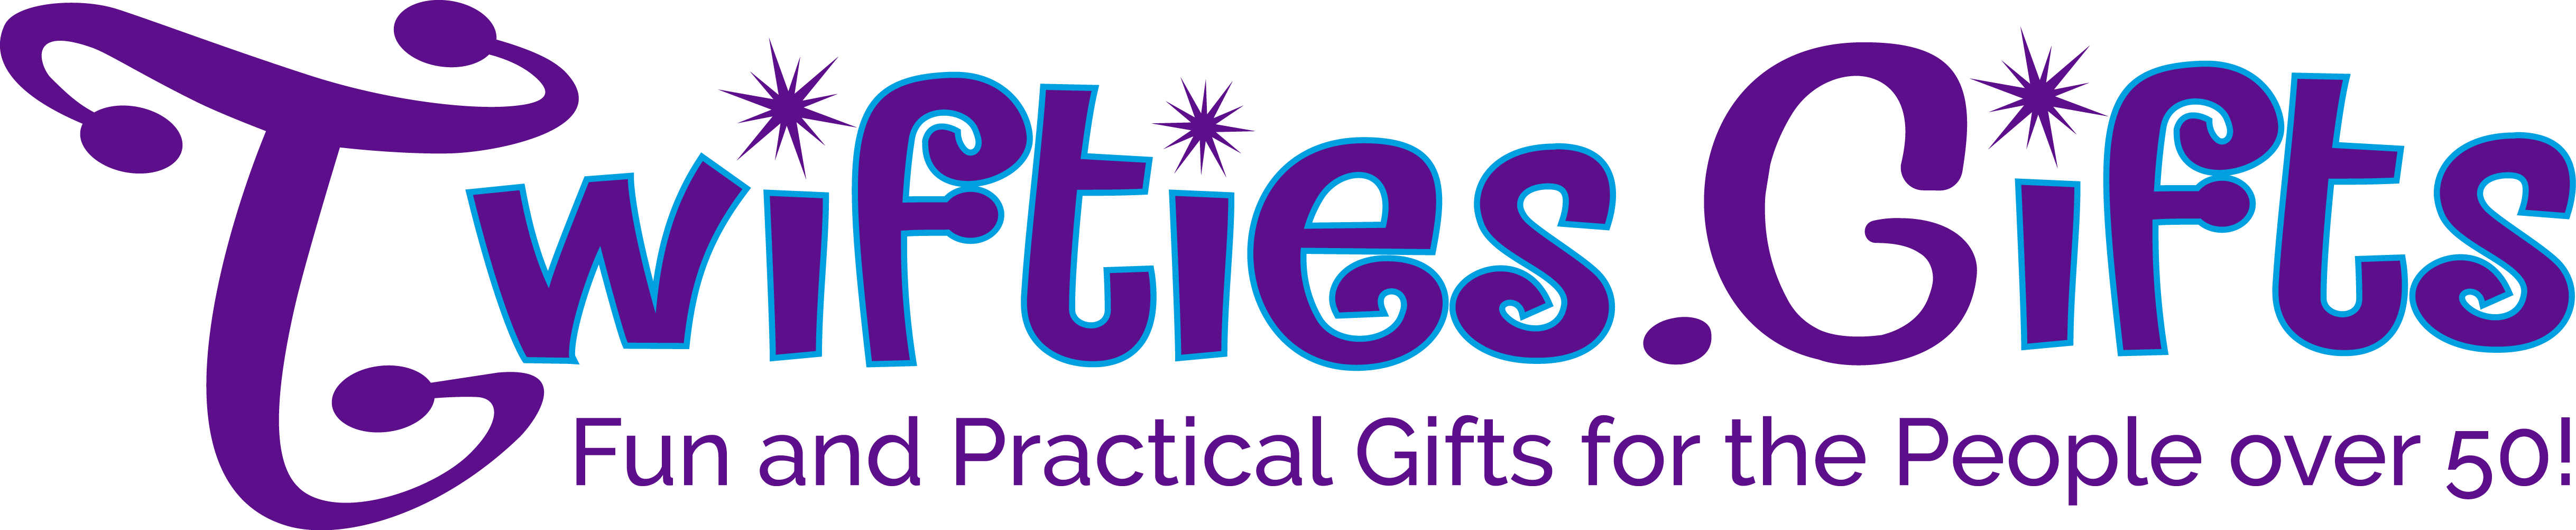 Twifties Gifts